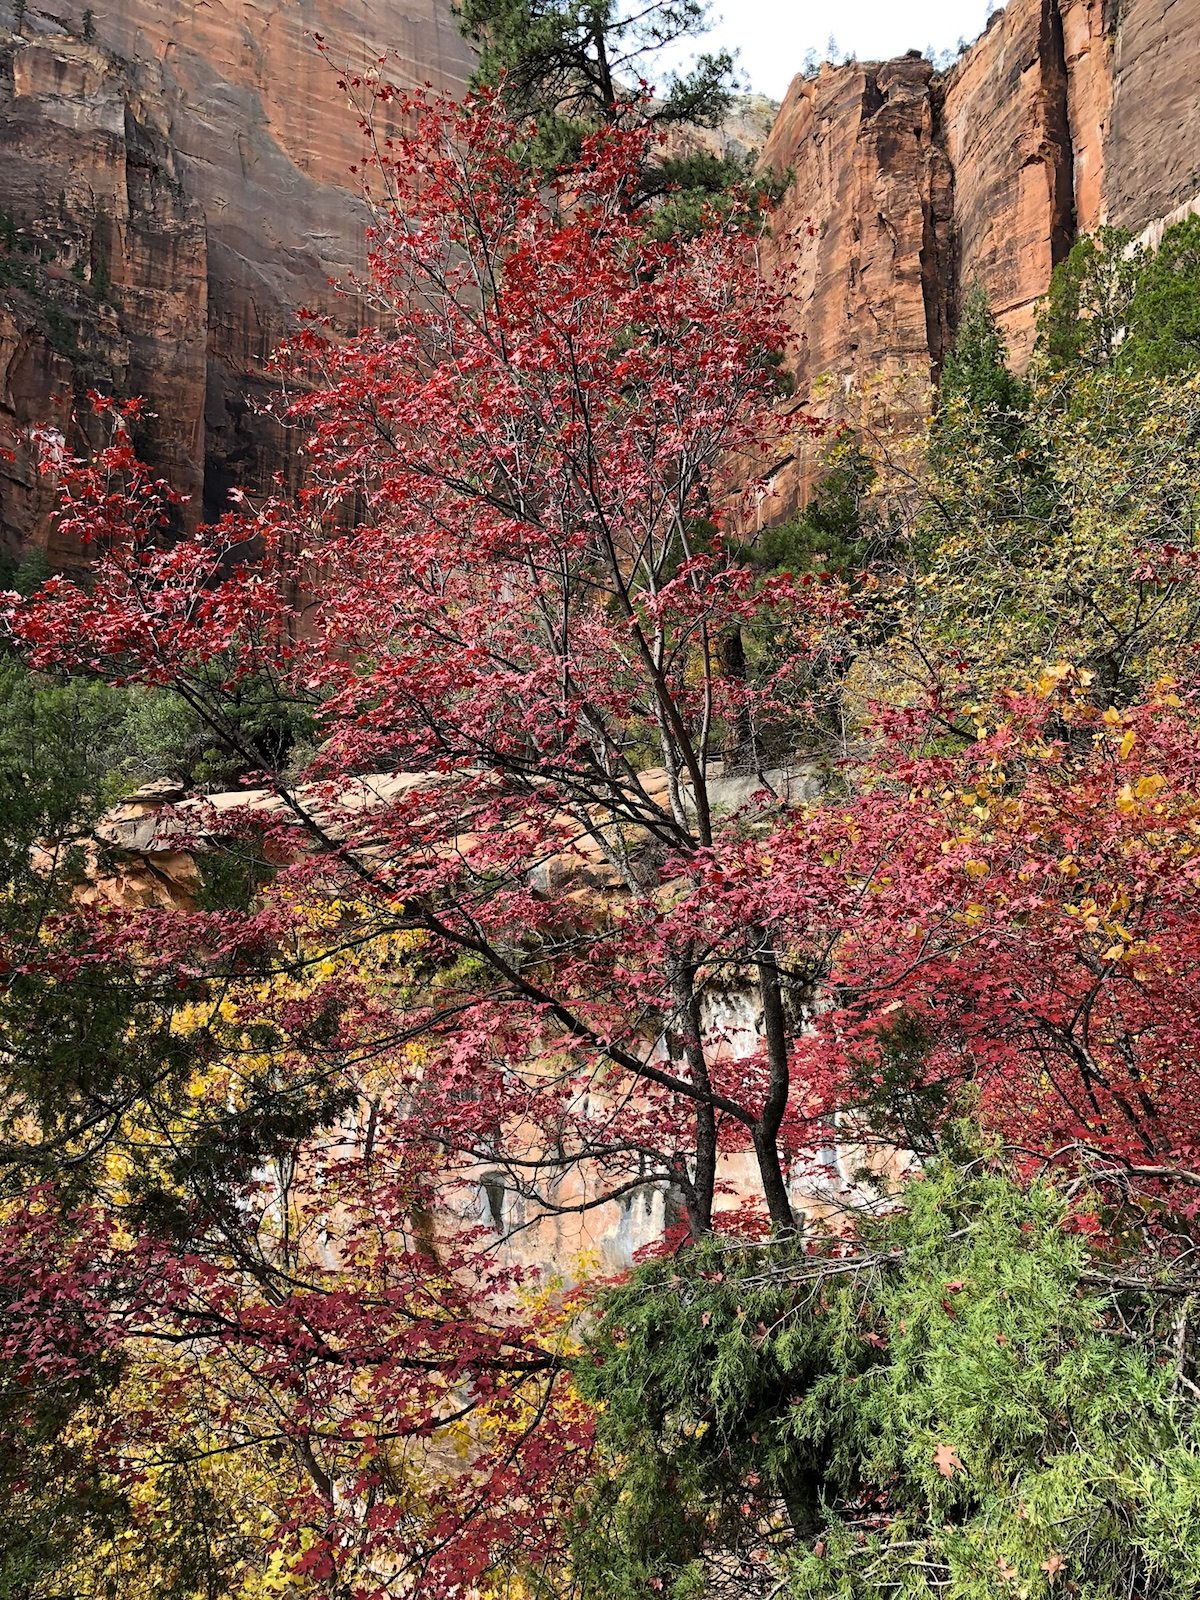 ZIon's coat of many colors